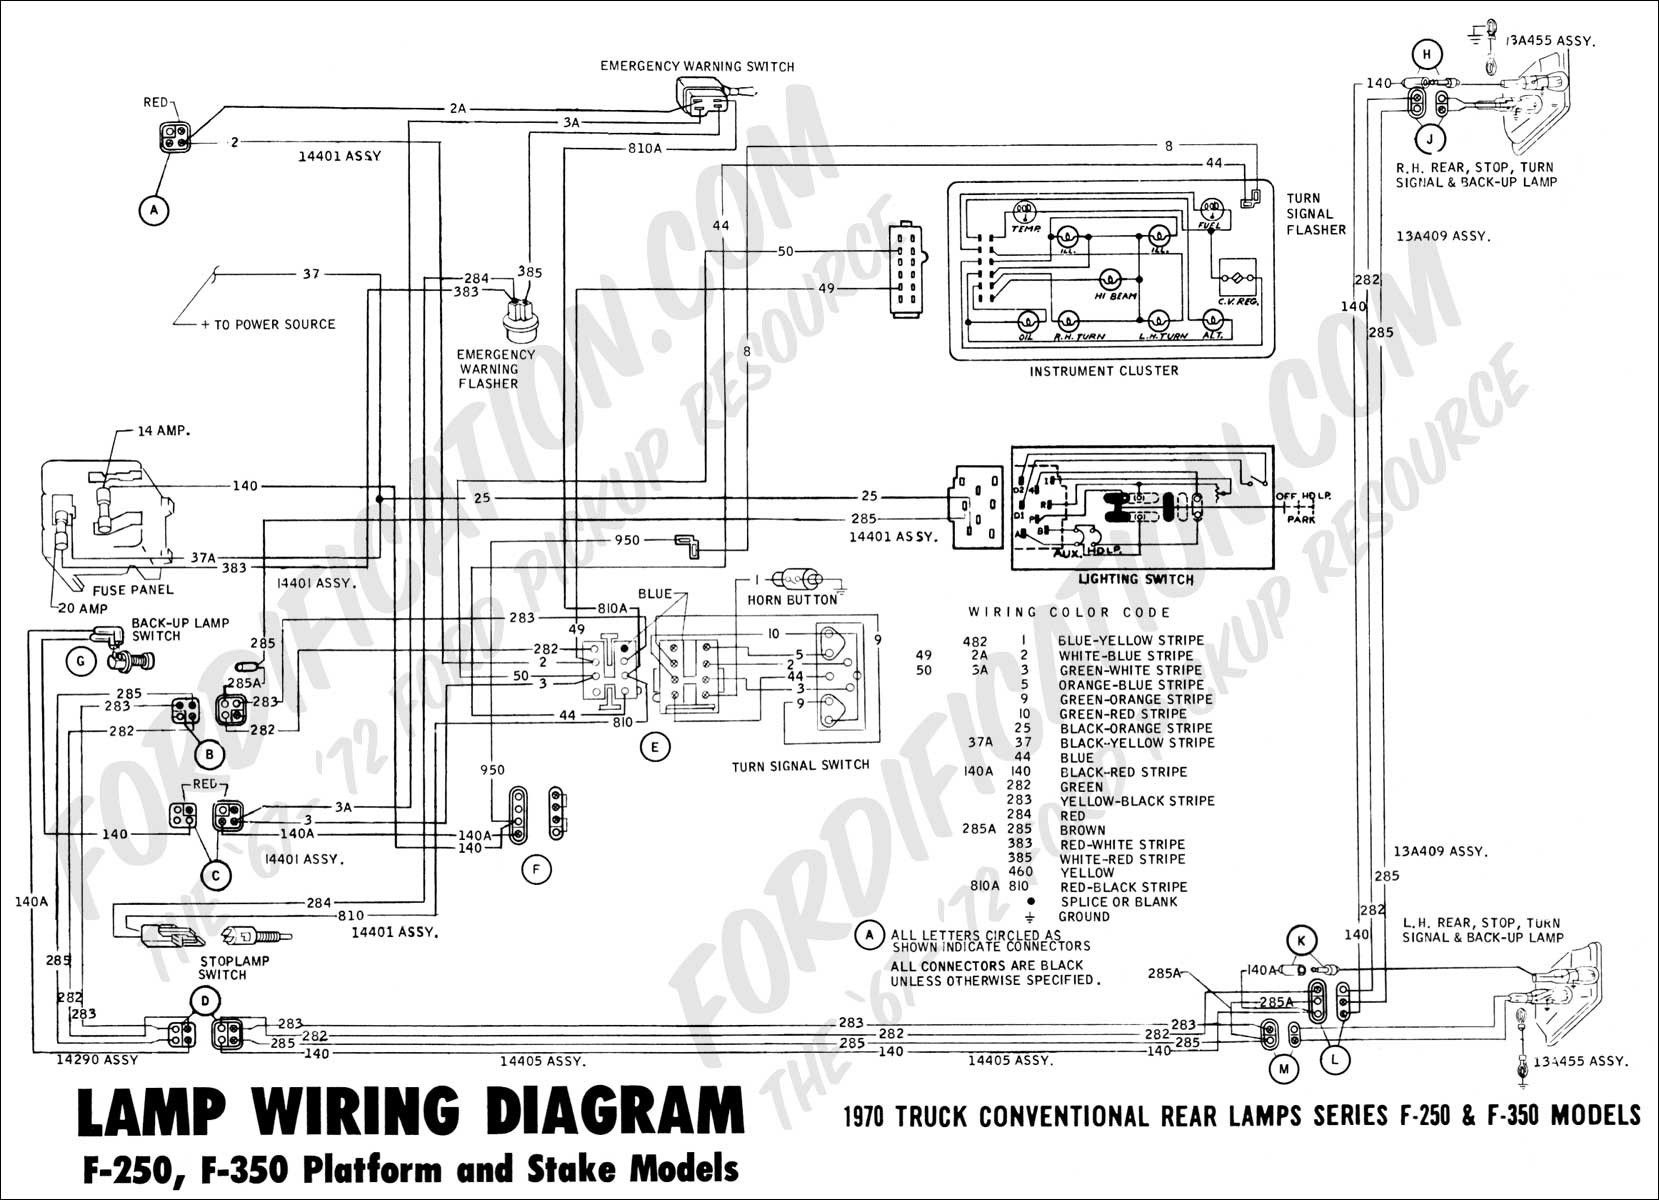 1986 f250 tail light wiring diagrams wire center \u2022 cj7 tail light wiring diagram 2001 ford f 250 tail light wiring diagram 2005 ford f 250 wiring rh parsplus co 1986 ford bronco wiring 1978 ford bronco wiring diagram